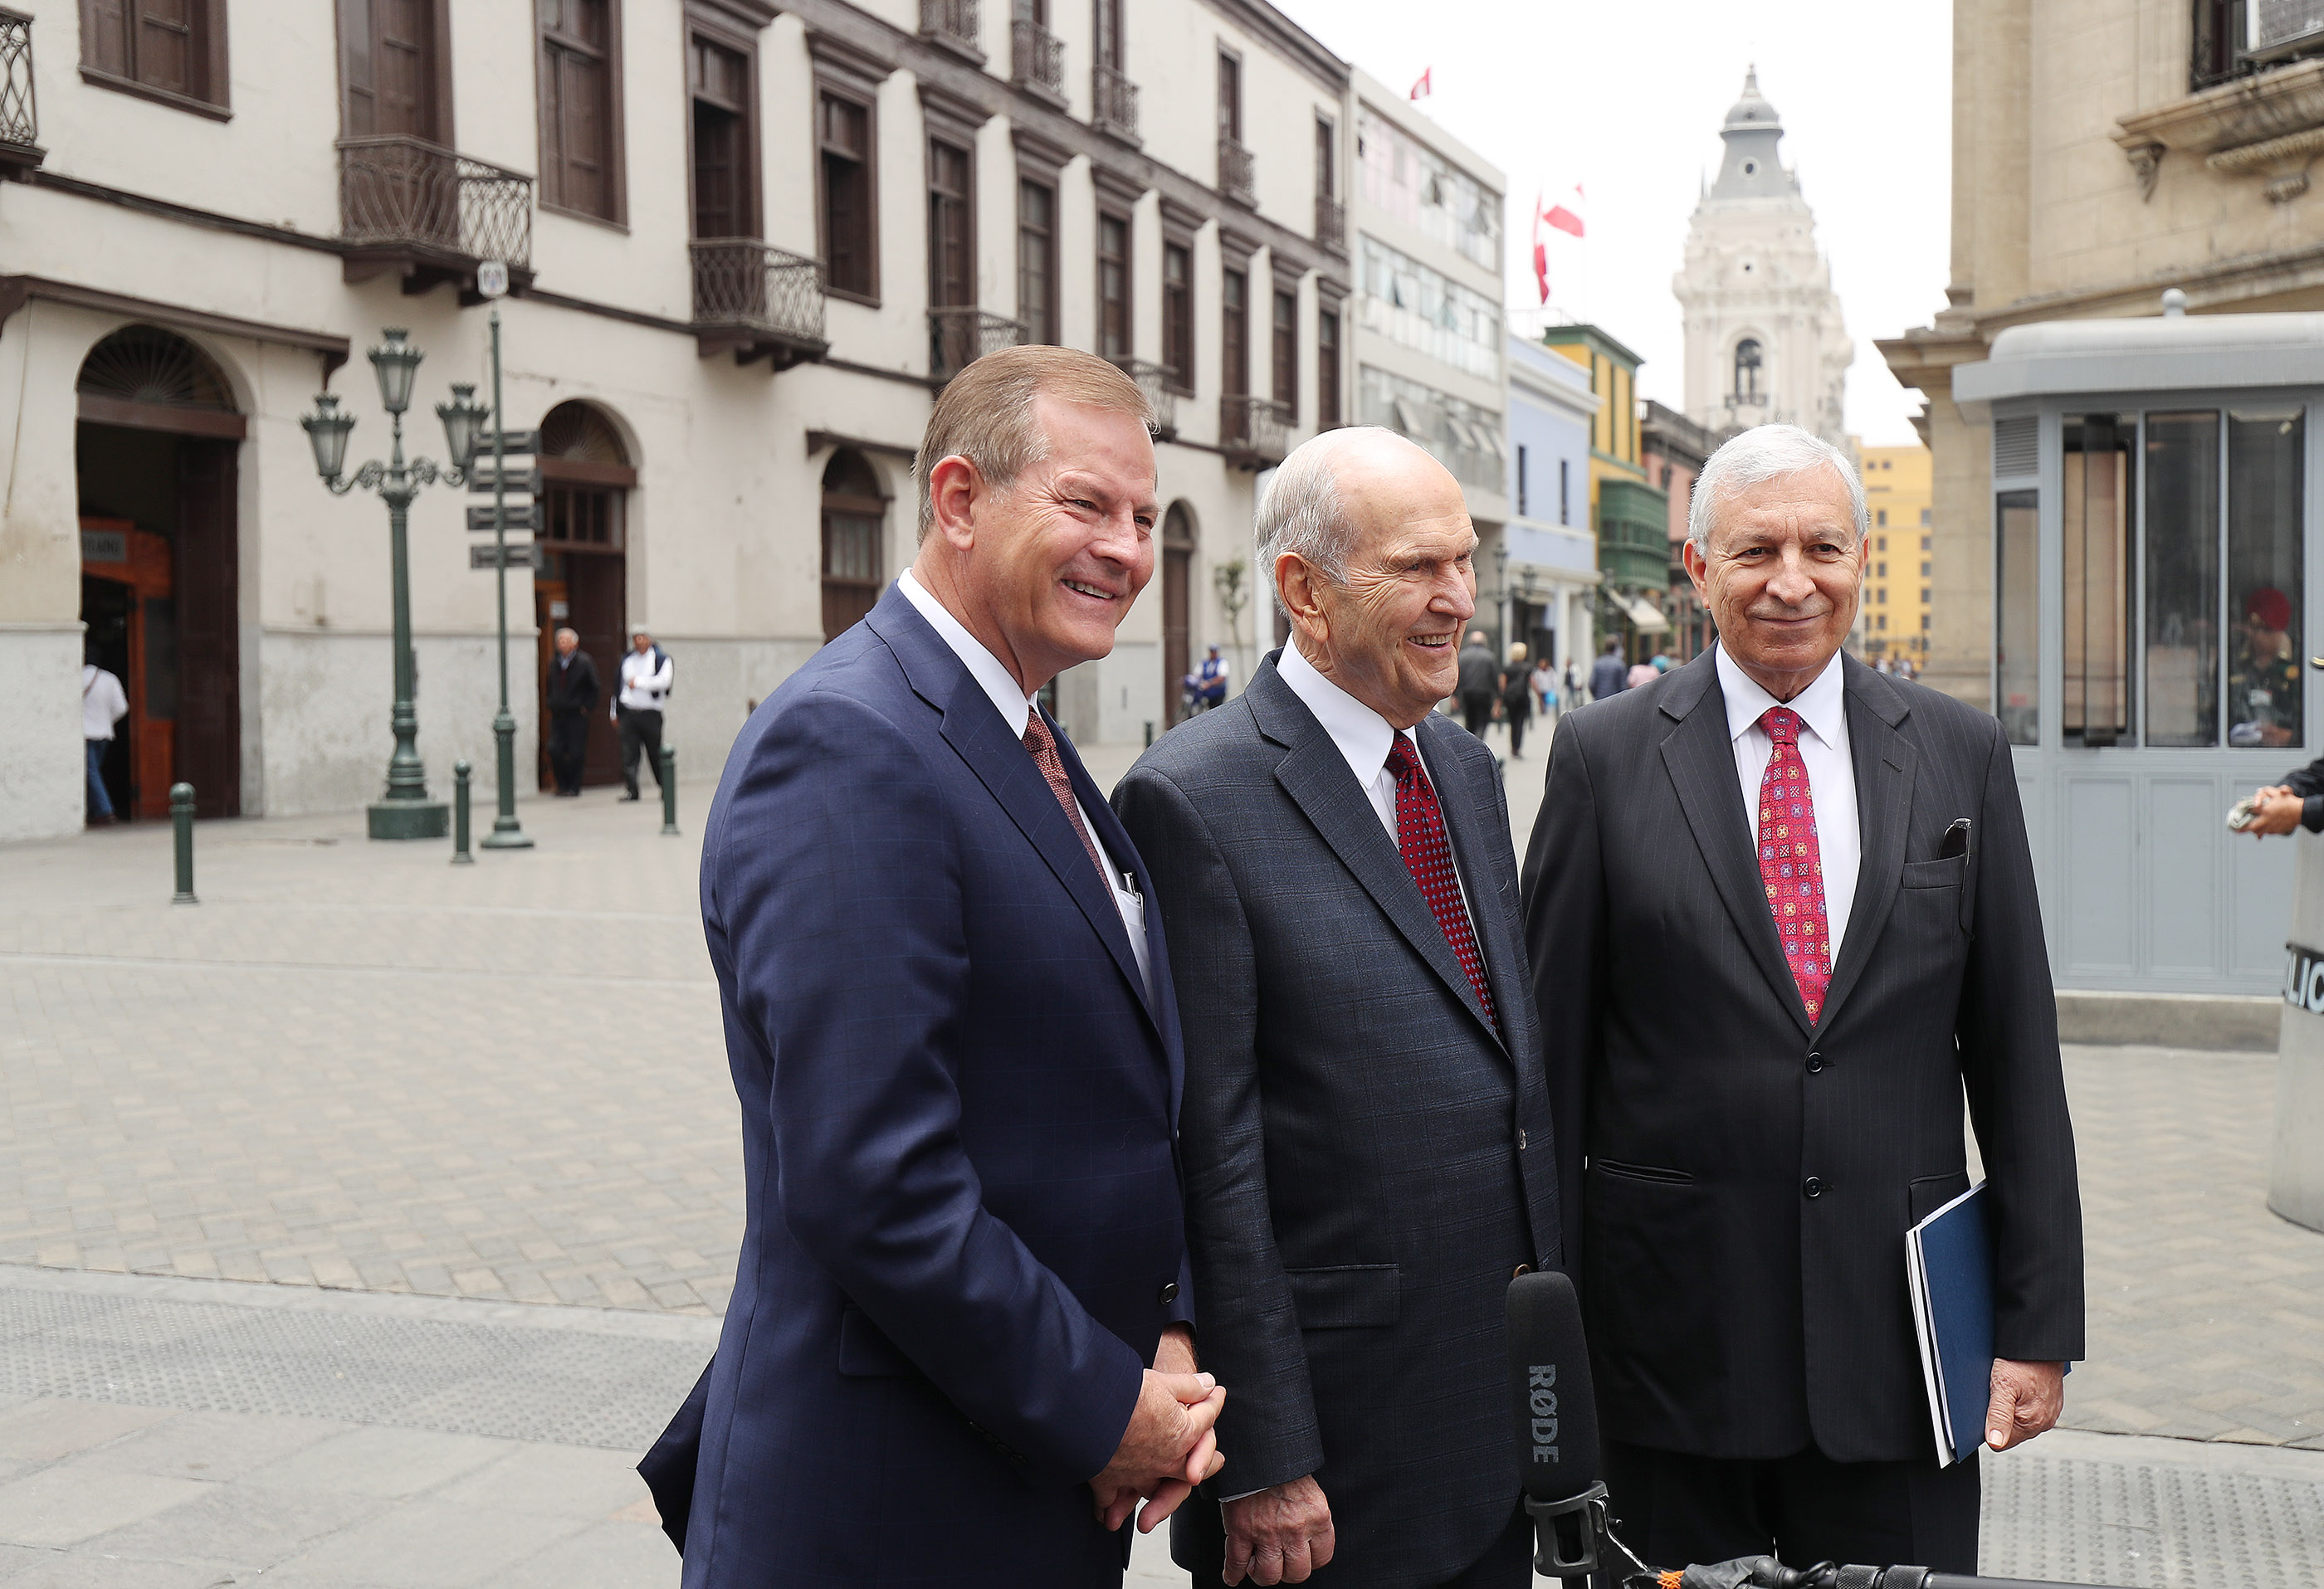 President Russell M. Nelson of The Church of Jesus Christ of Latter-day Saints, center, Elder Gary E. Stevenson, of the Quorum of the Twelve Apostles, and Elder Enrique Falabella, General Authority Seventy, speak with media after leaving the Government Palace after visiting the president of Peru in Lima, Peru, on Oct. 20, 2018.